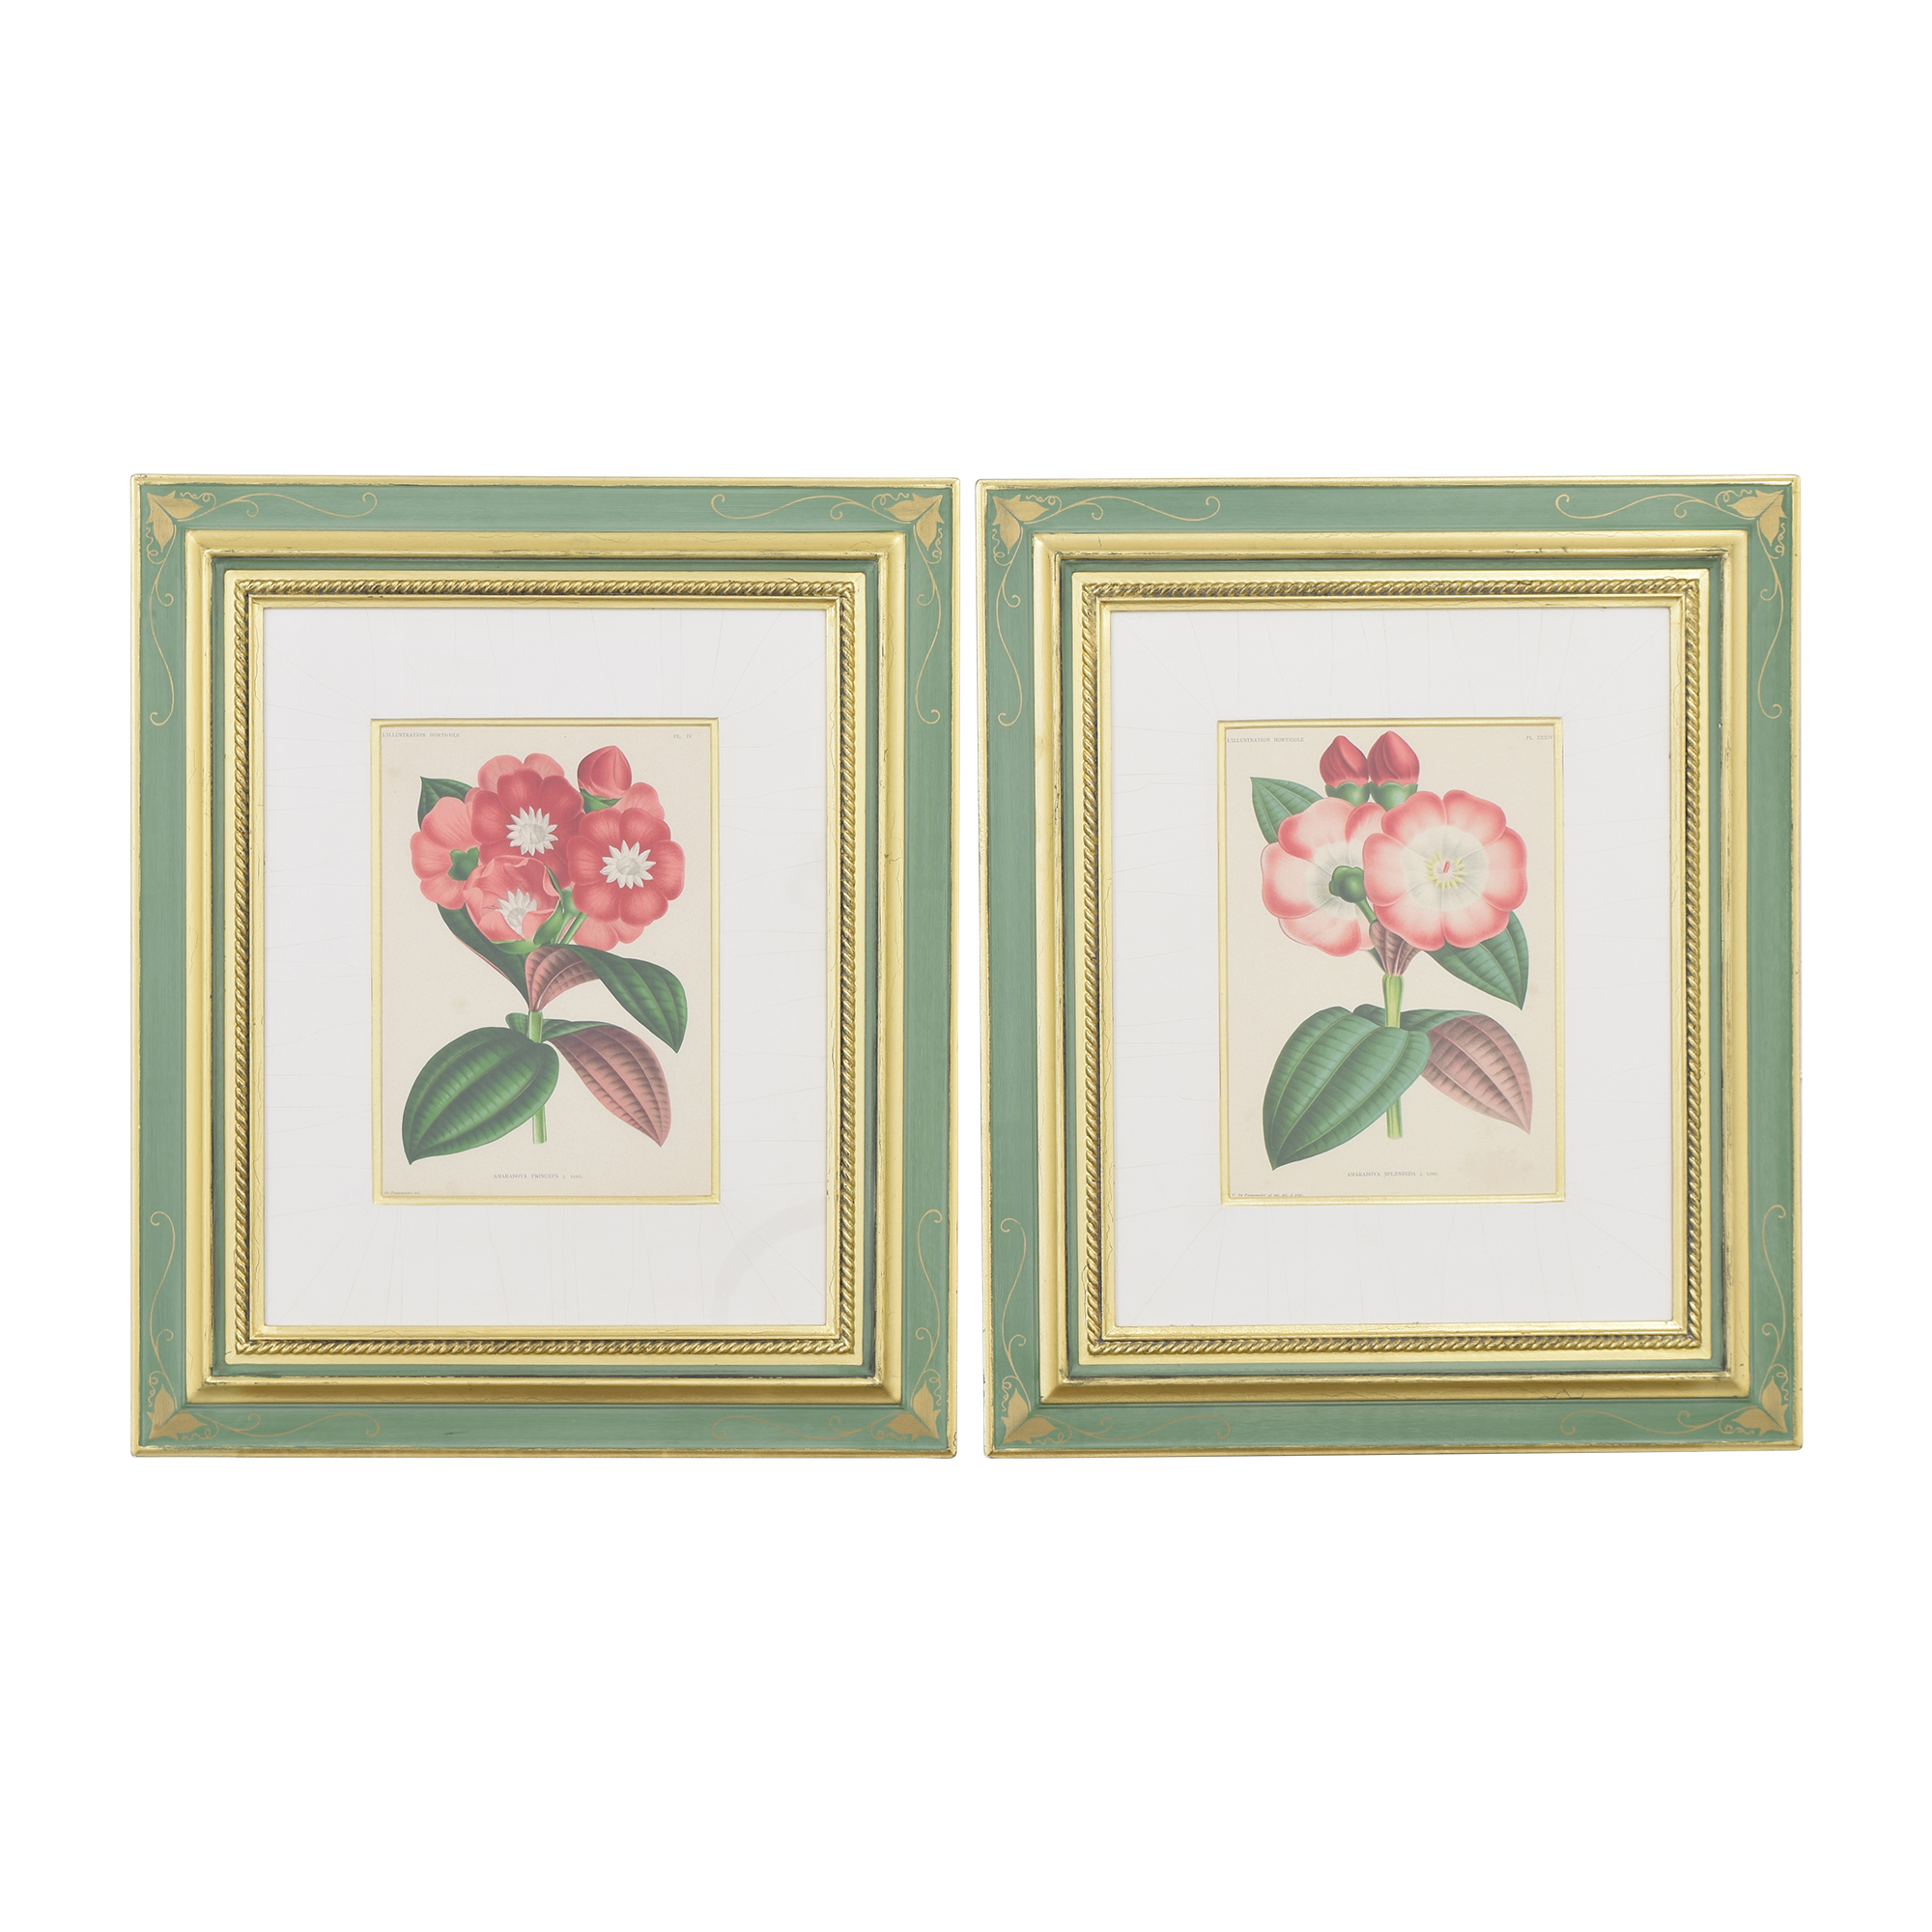 Botanical Wall Art for sale